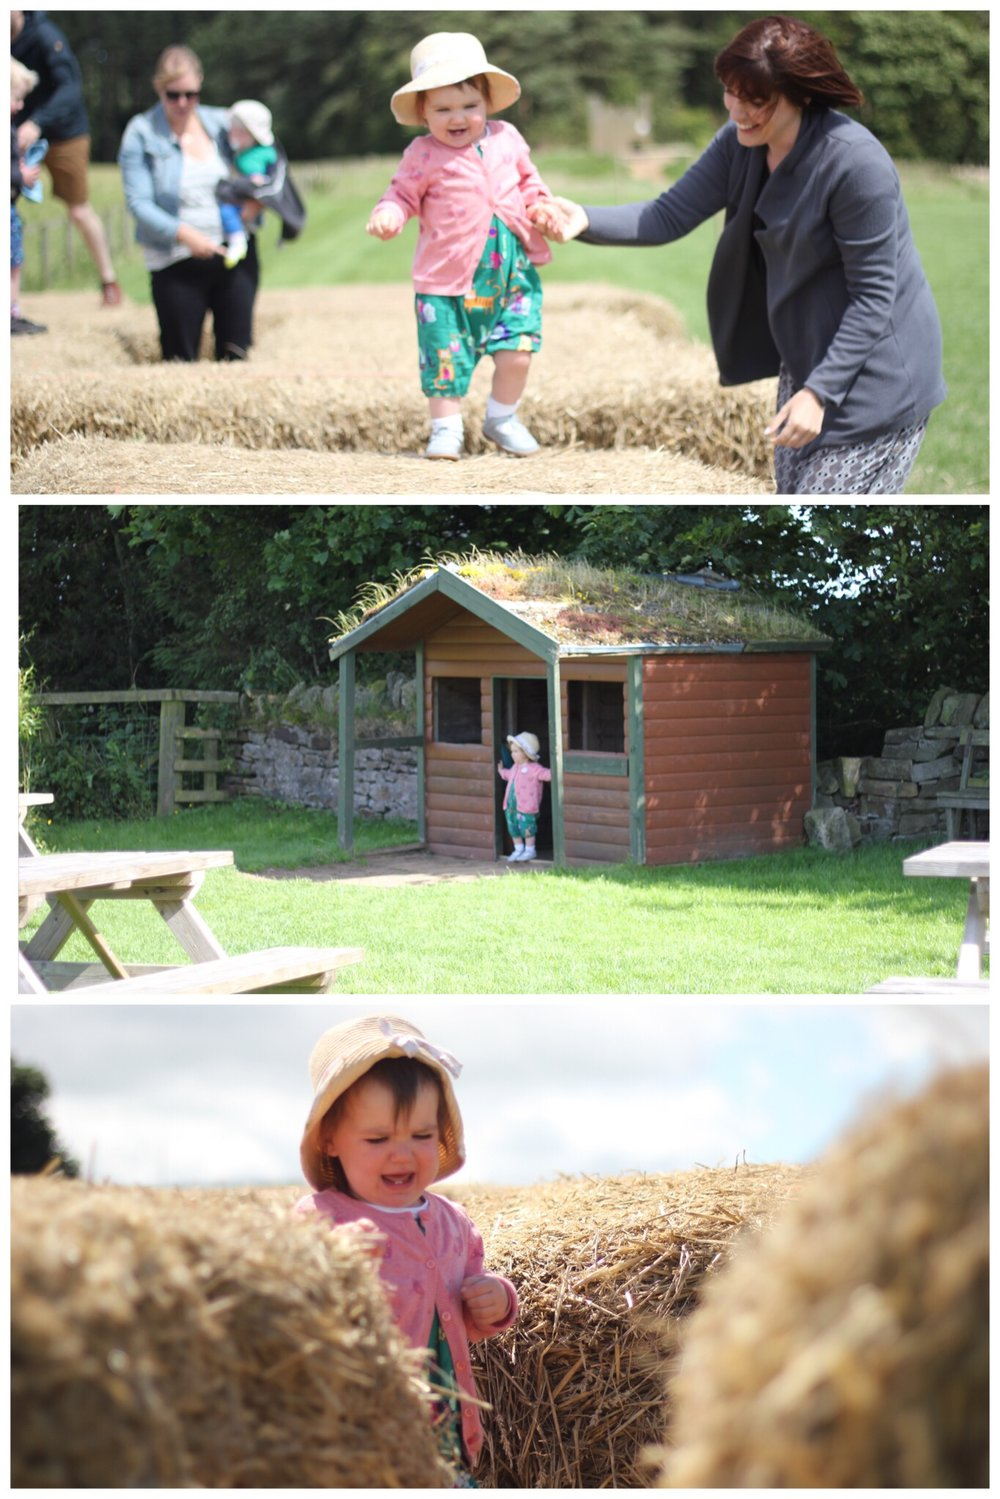 Broom House Farm Coffee Shop Play Equipment Children Sprog on the Tyne Hay Bale Maze Play House